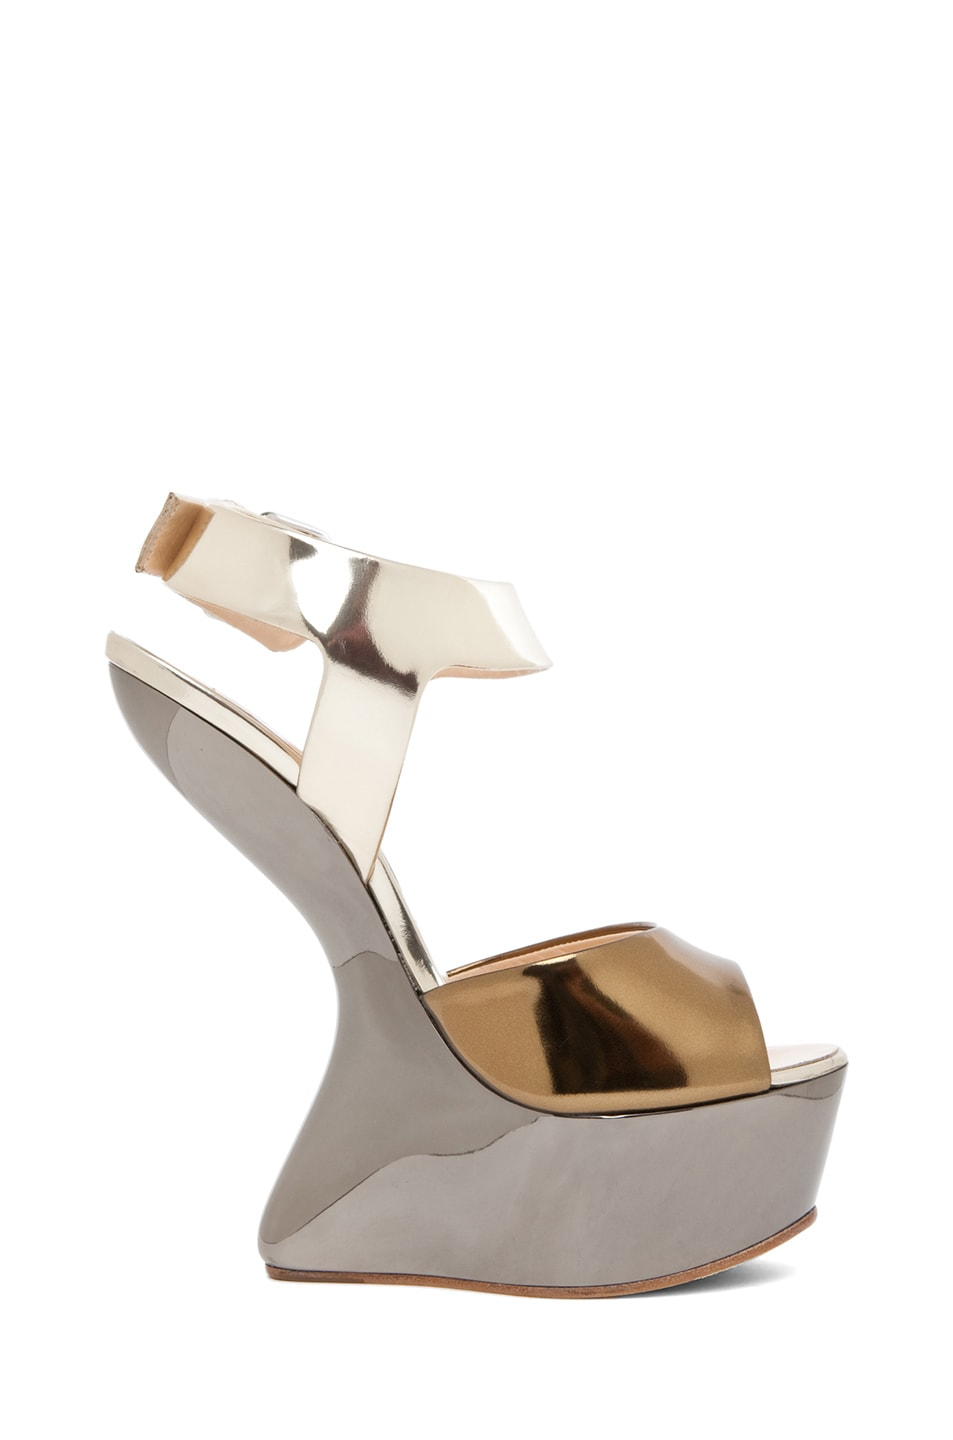 Image 5 of Giuseppe Zanotti Mirrored Wedge Sandal in Mixed Metallic